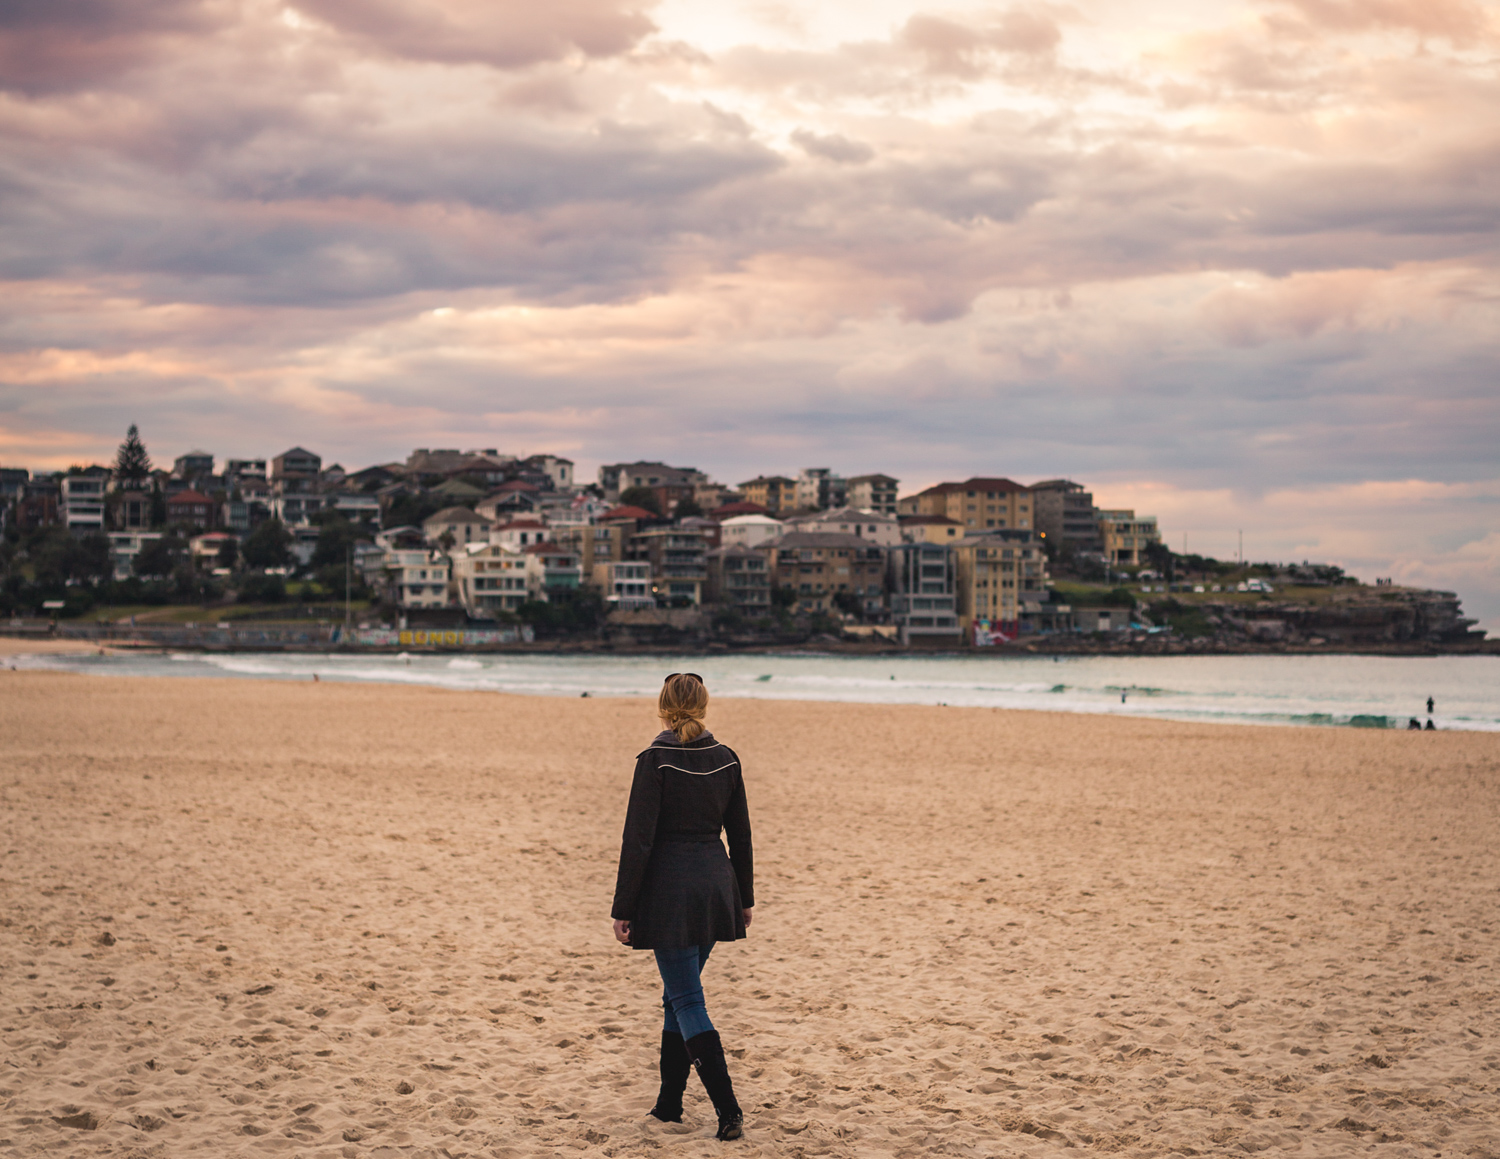 Best Sydney Sunrise Spots: Bondi Beach